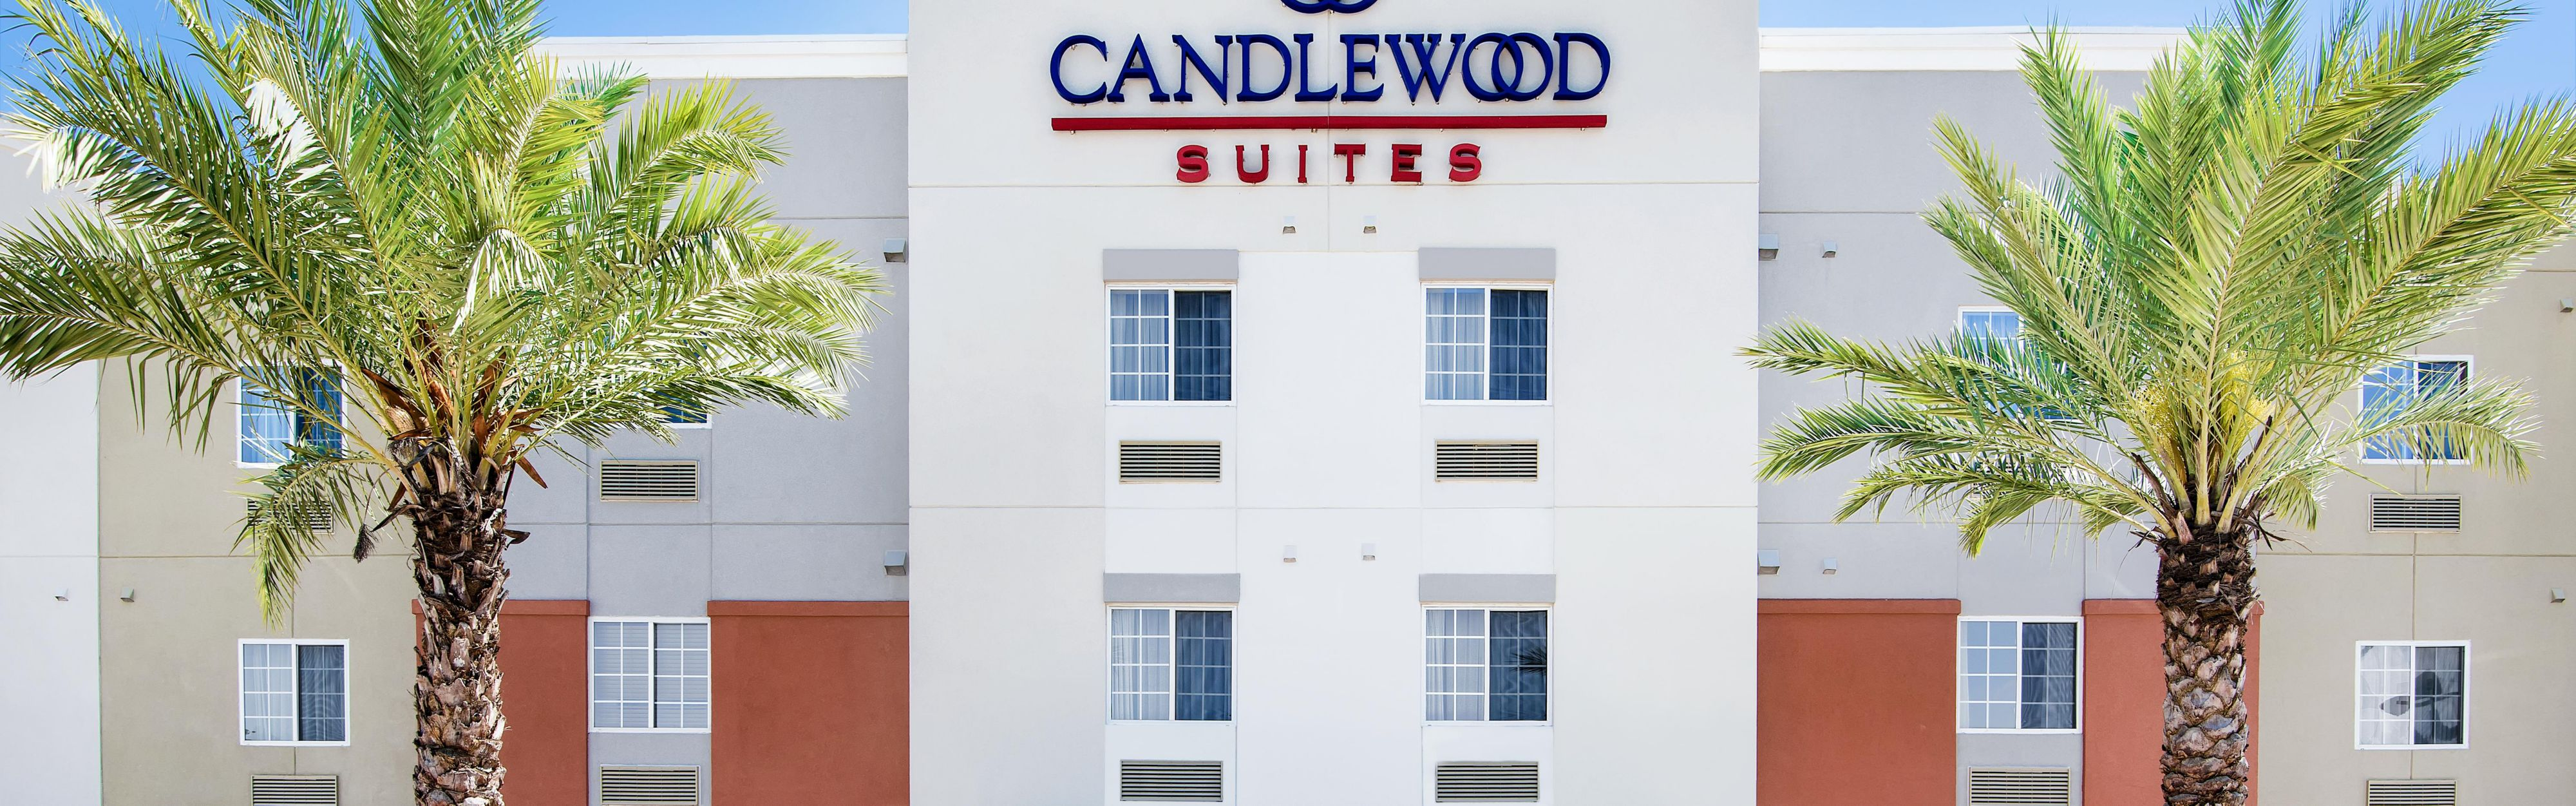 Candlewood Suites Houston Nw - Willowbrook image 0